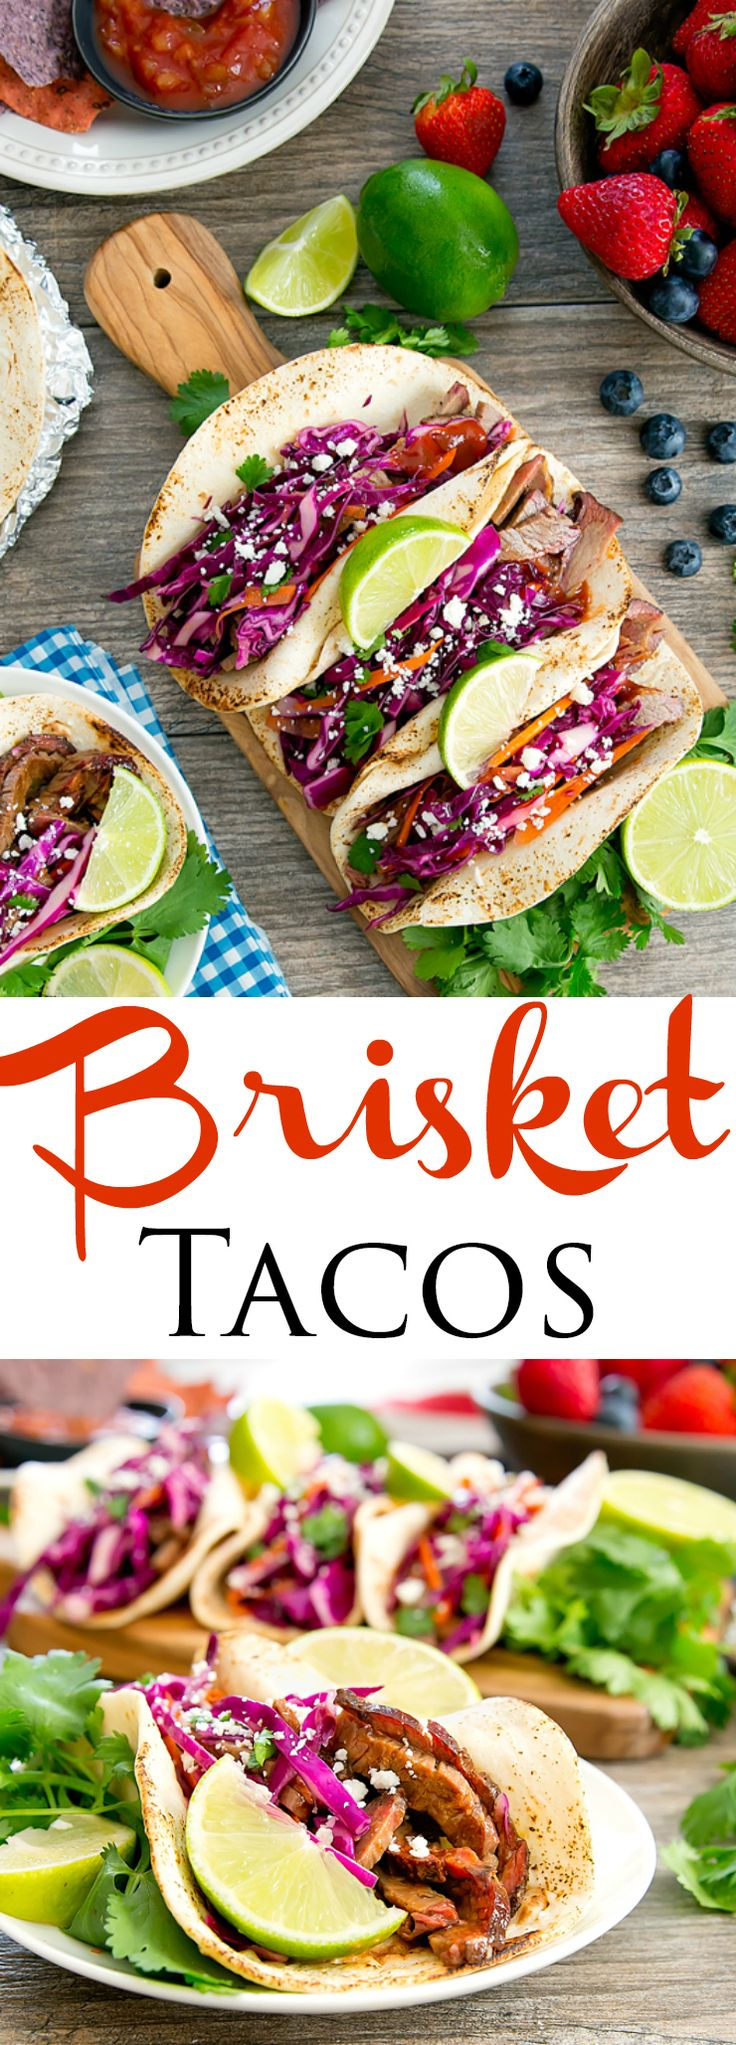 Brisket Tacos with Red Cabbage Slaw. Perfect for a summer BBQ!